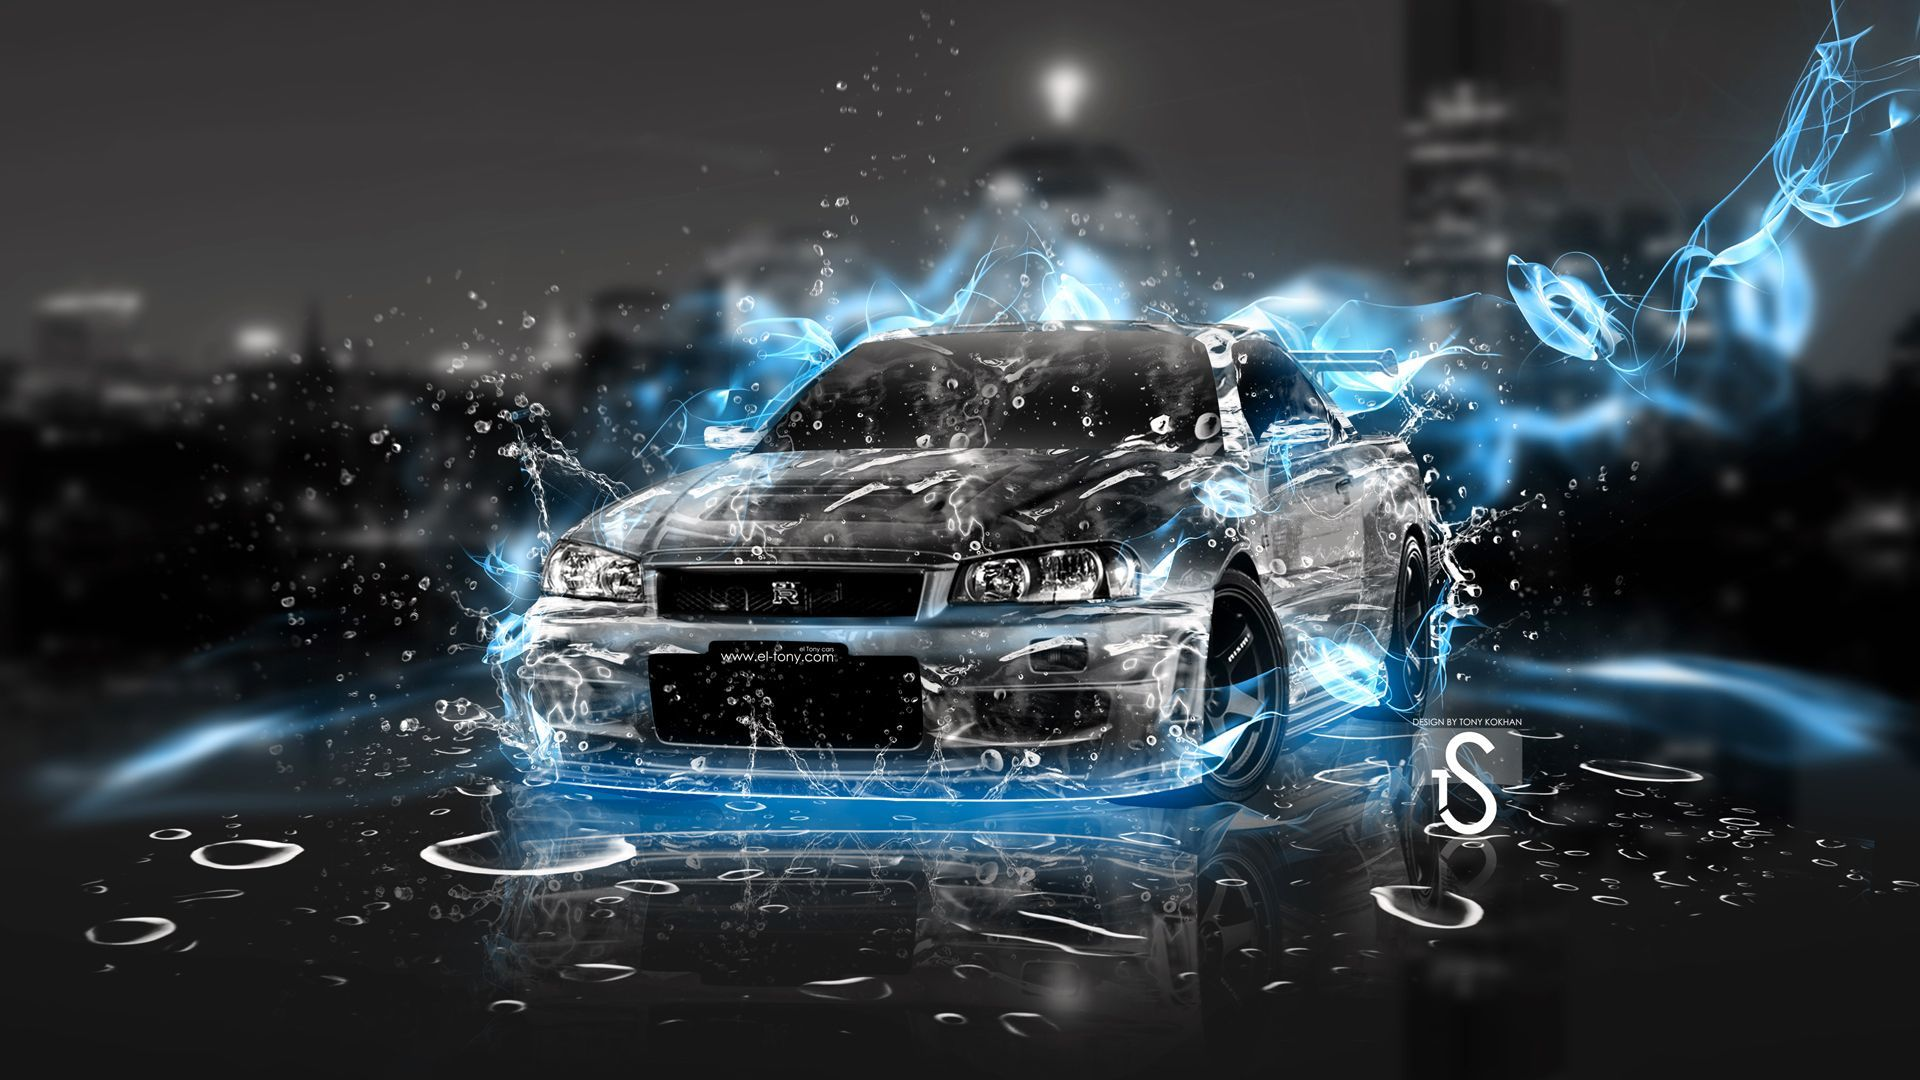 Cool Nissan Skyline Wallpapers Top Free Cool Nissan Skyline Backgrounds Wallpaperaccess